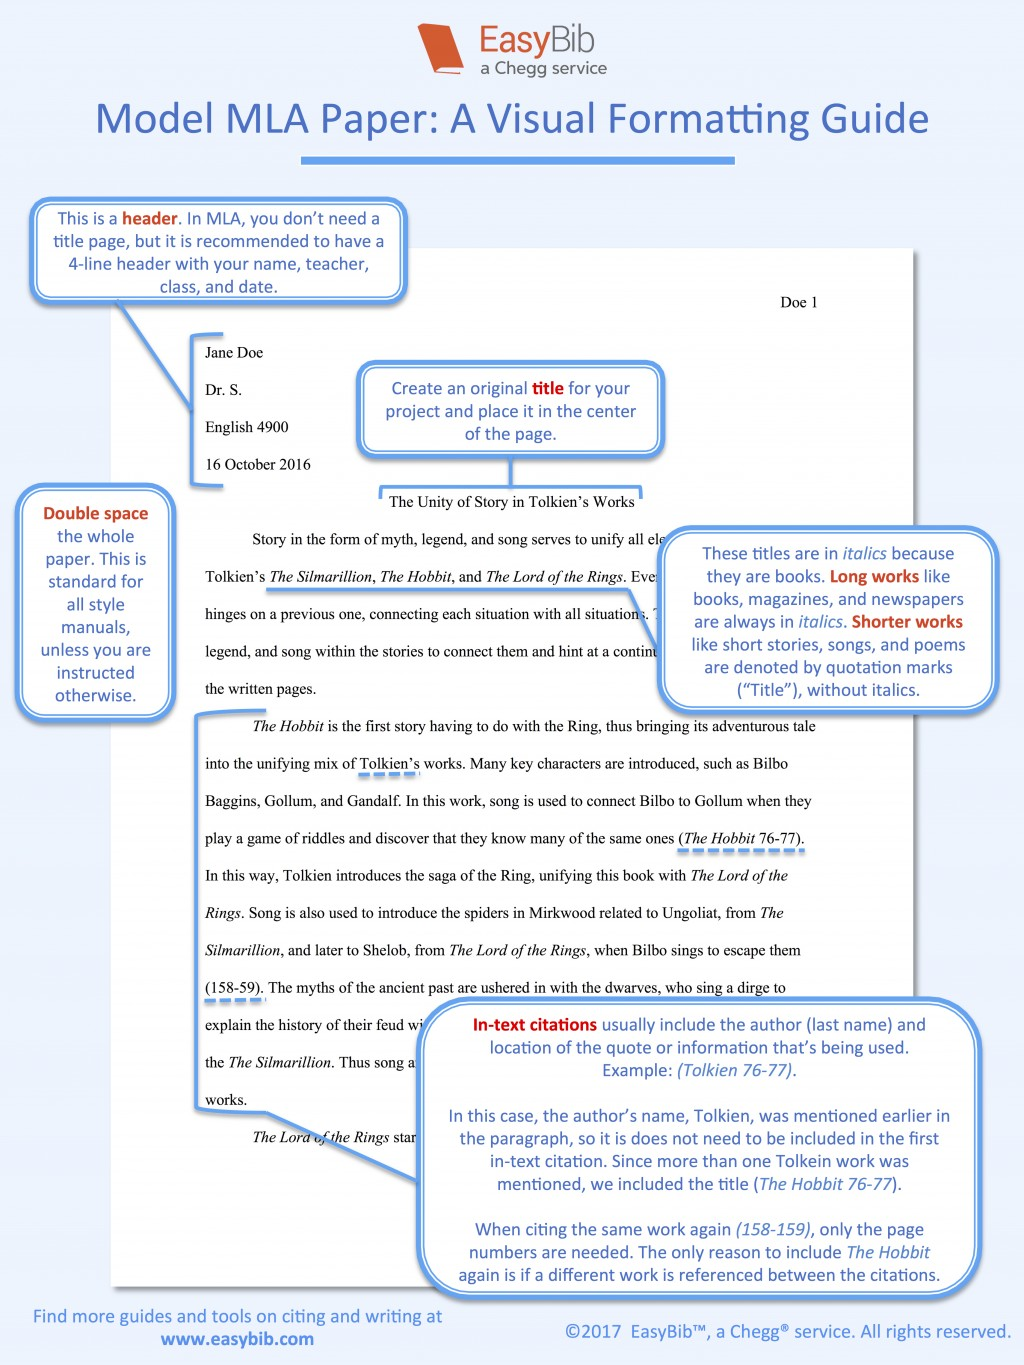 008 Model Mla Paper How To Format Research Fantastic A Style Large